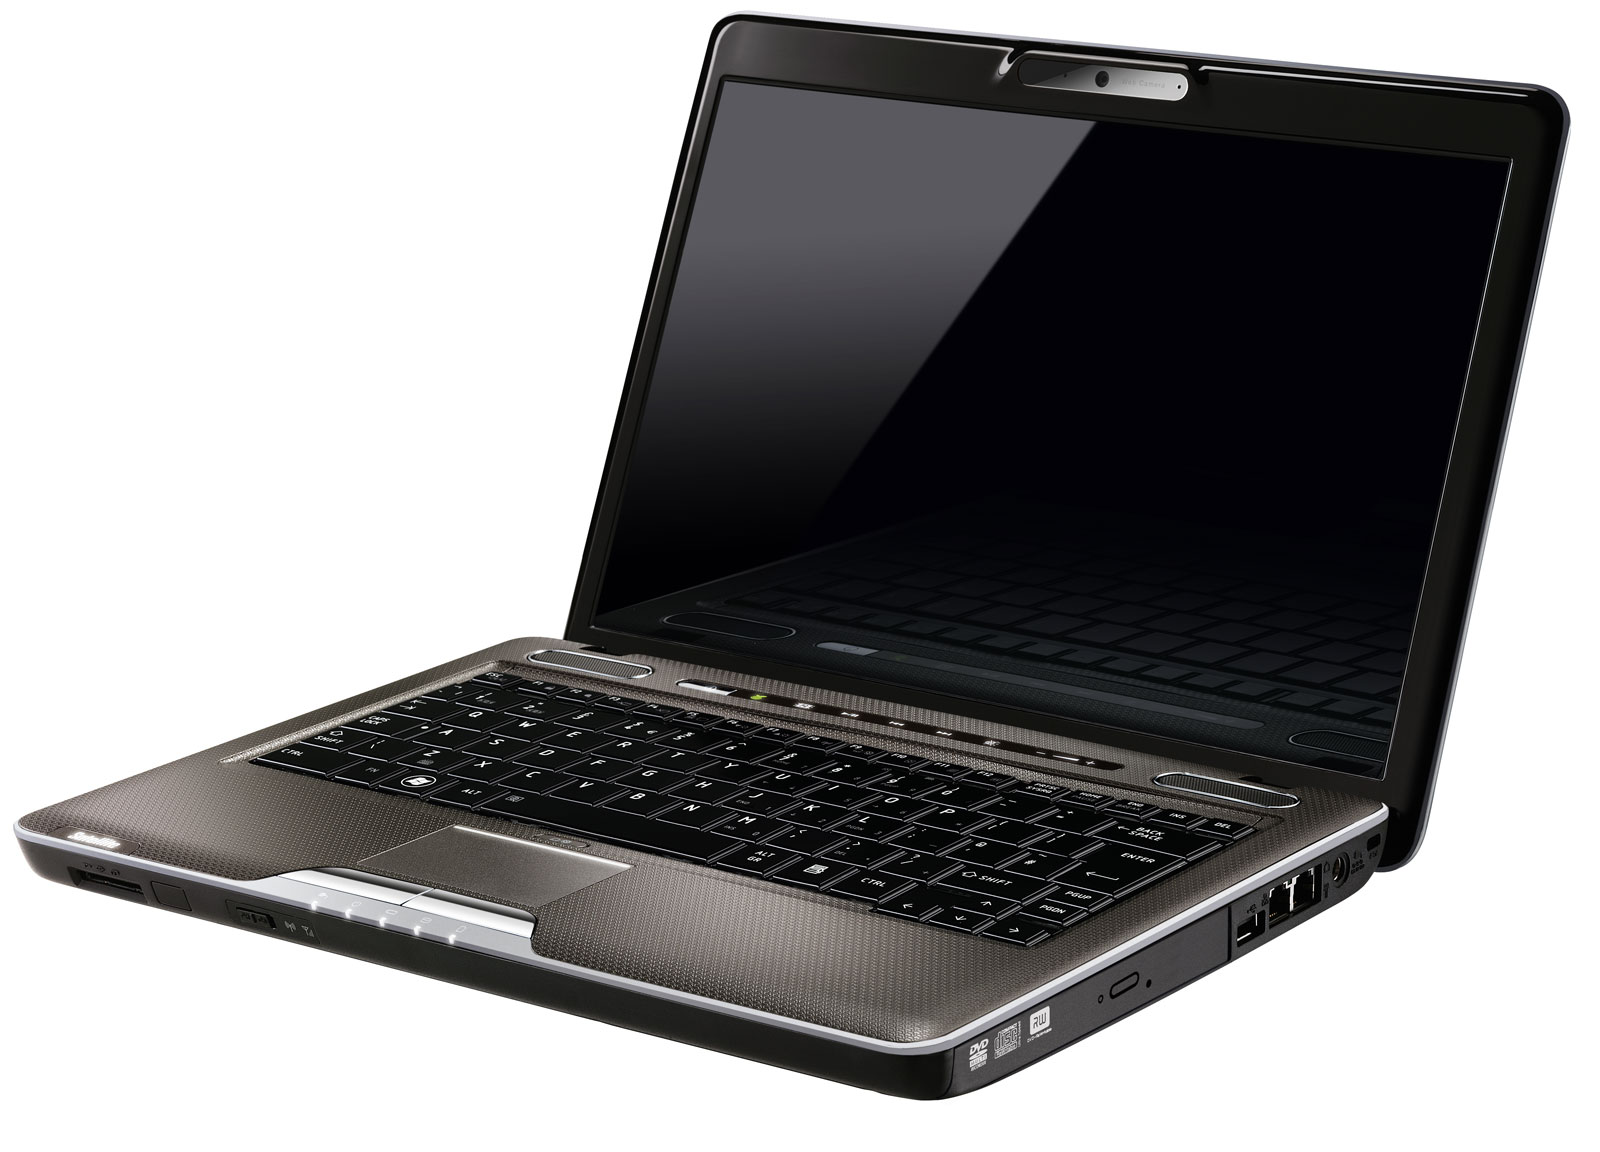 TOSHIBA SATELLITE U500 ATI GRAPHICS DRIVERS FOR WINDOWS XP